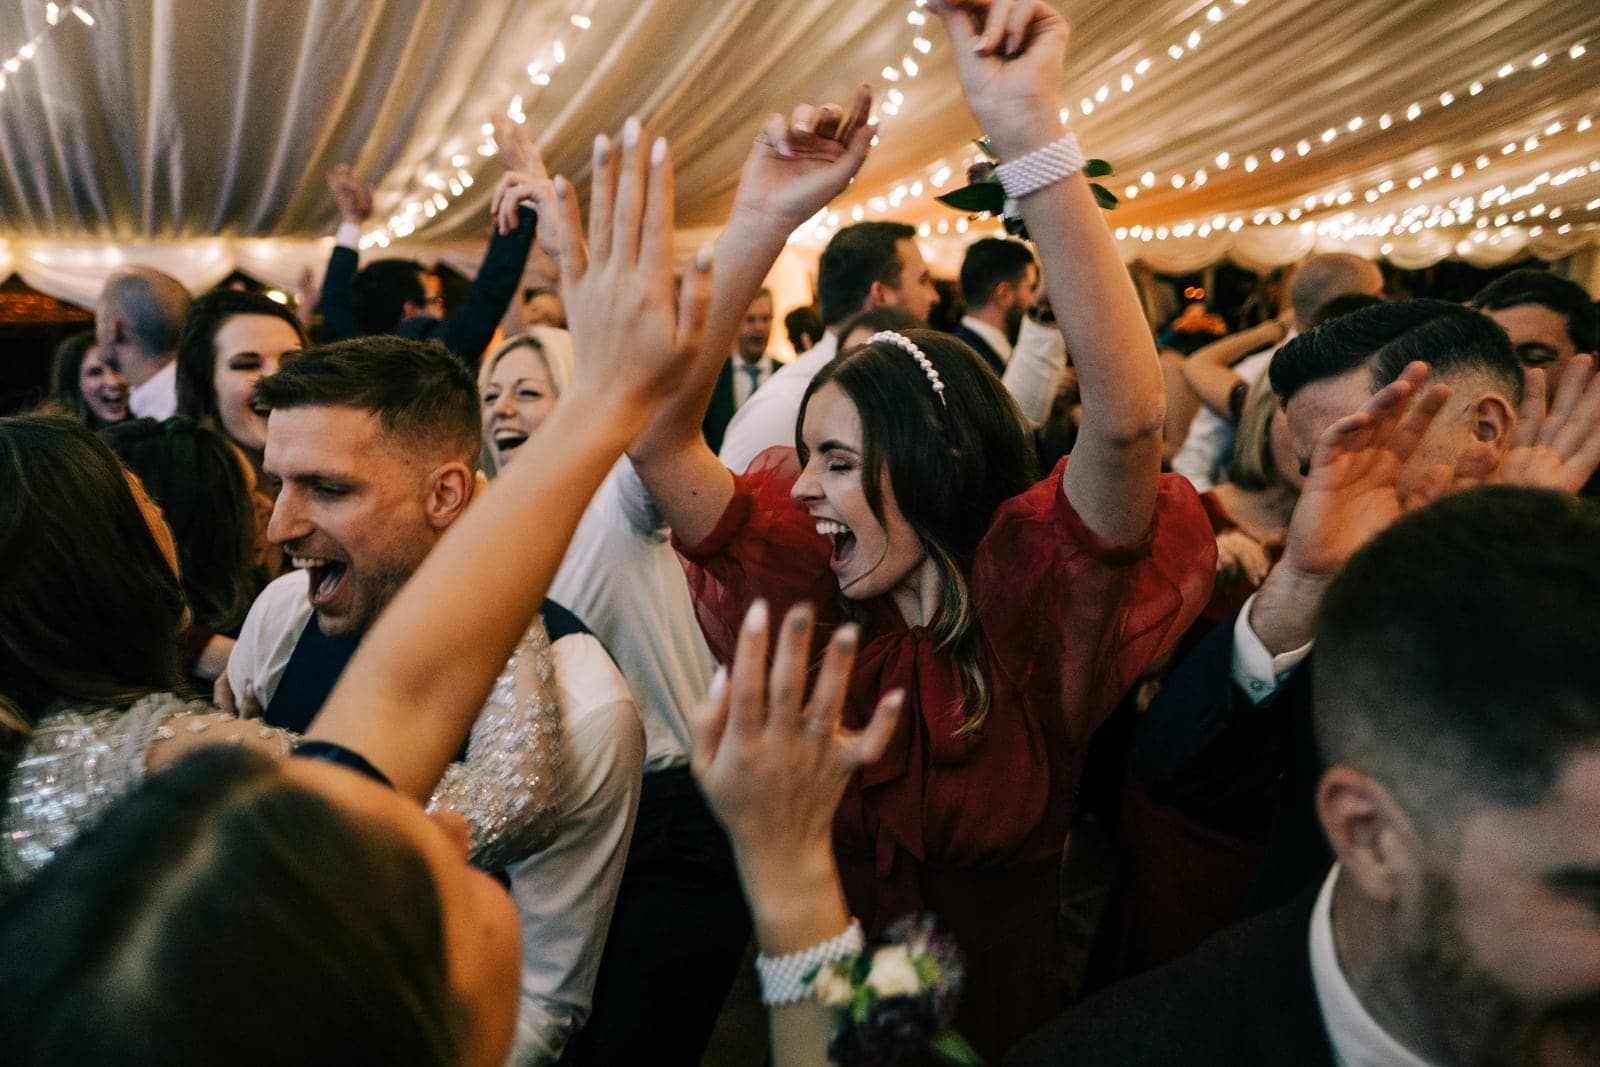 Wedding guest dancing on a packed dance floor